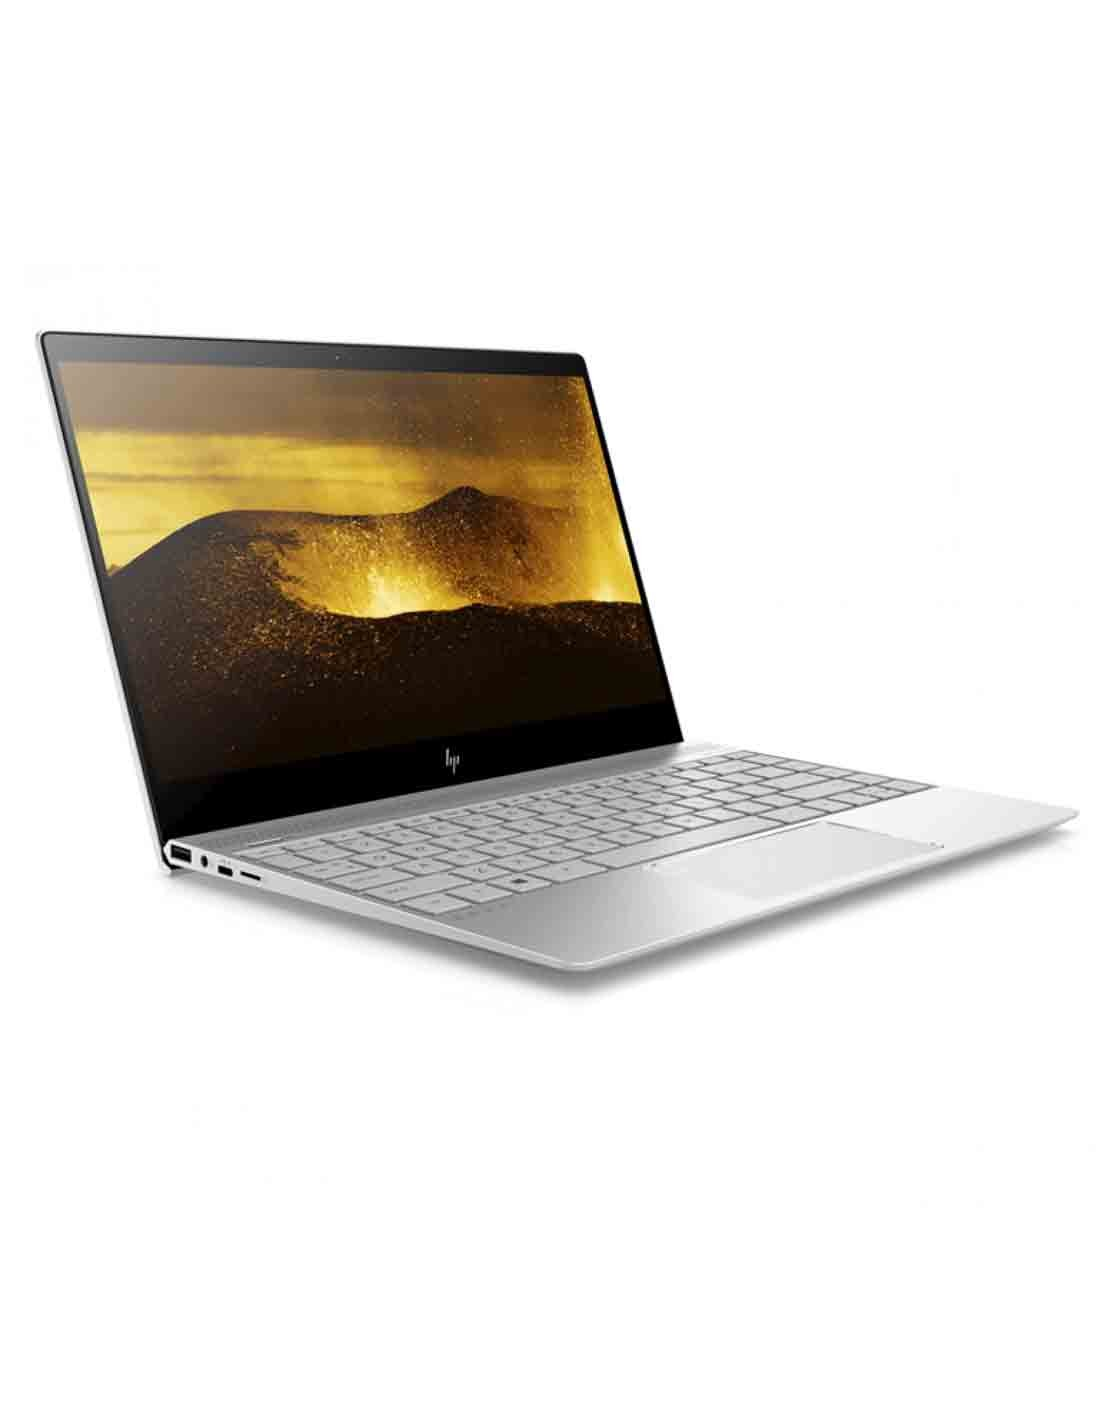 HP ENVY 13-ad105ne at a cheap price and free delivery in Dubai